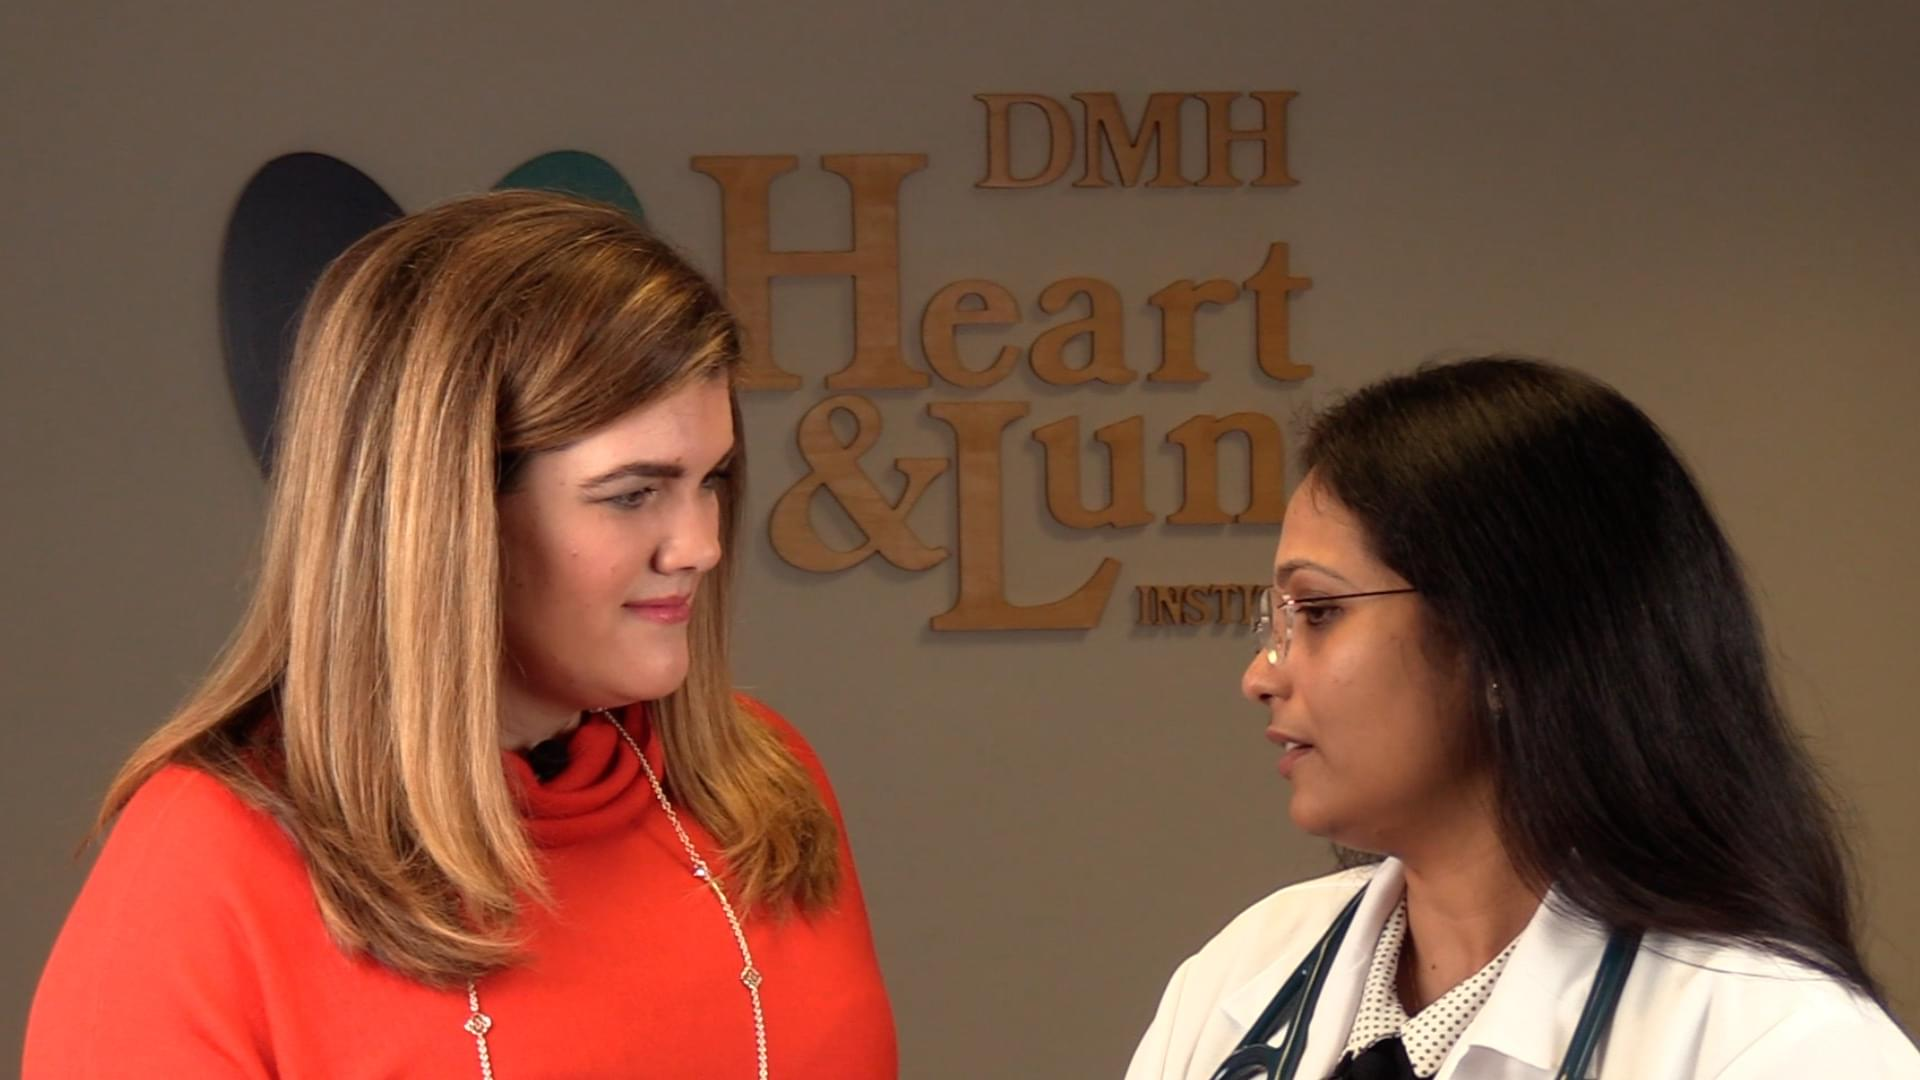 WATCH: DMH Newslink with NowDecatur – Flu and Heart Attacks